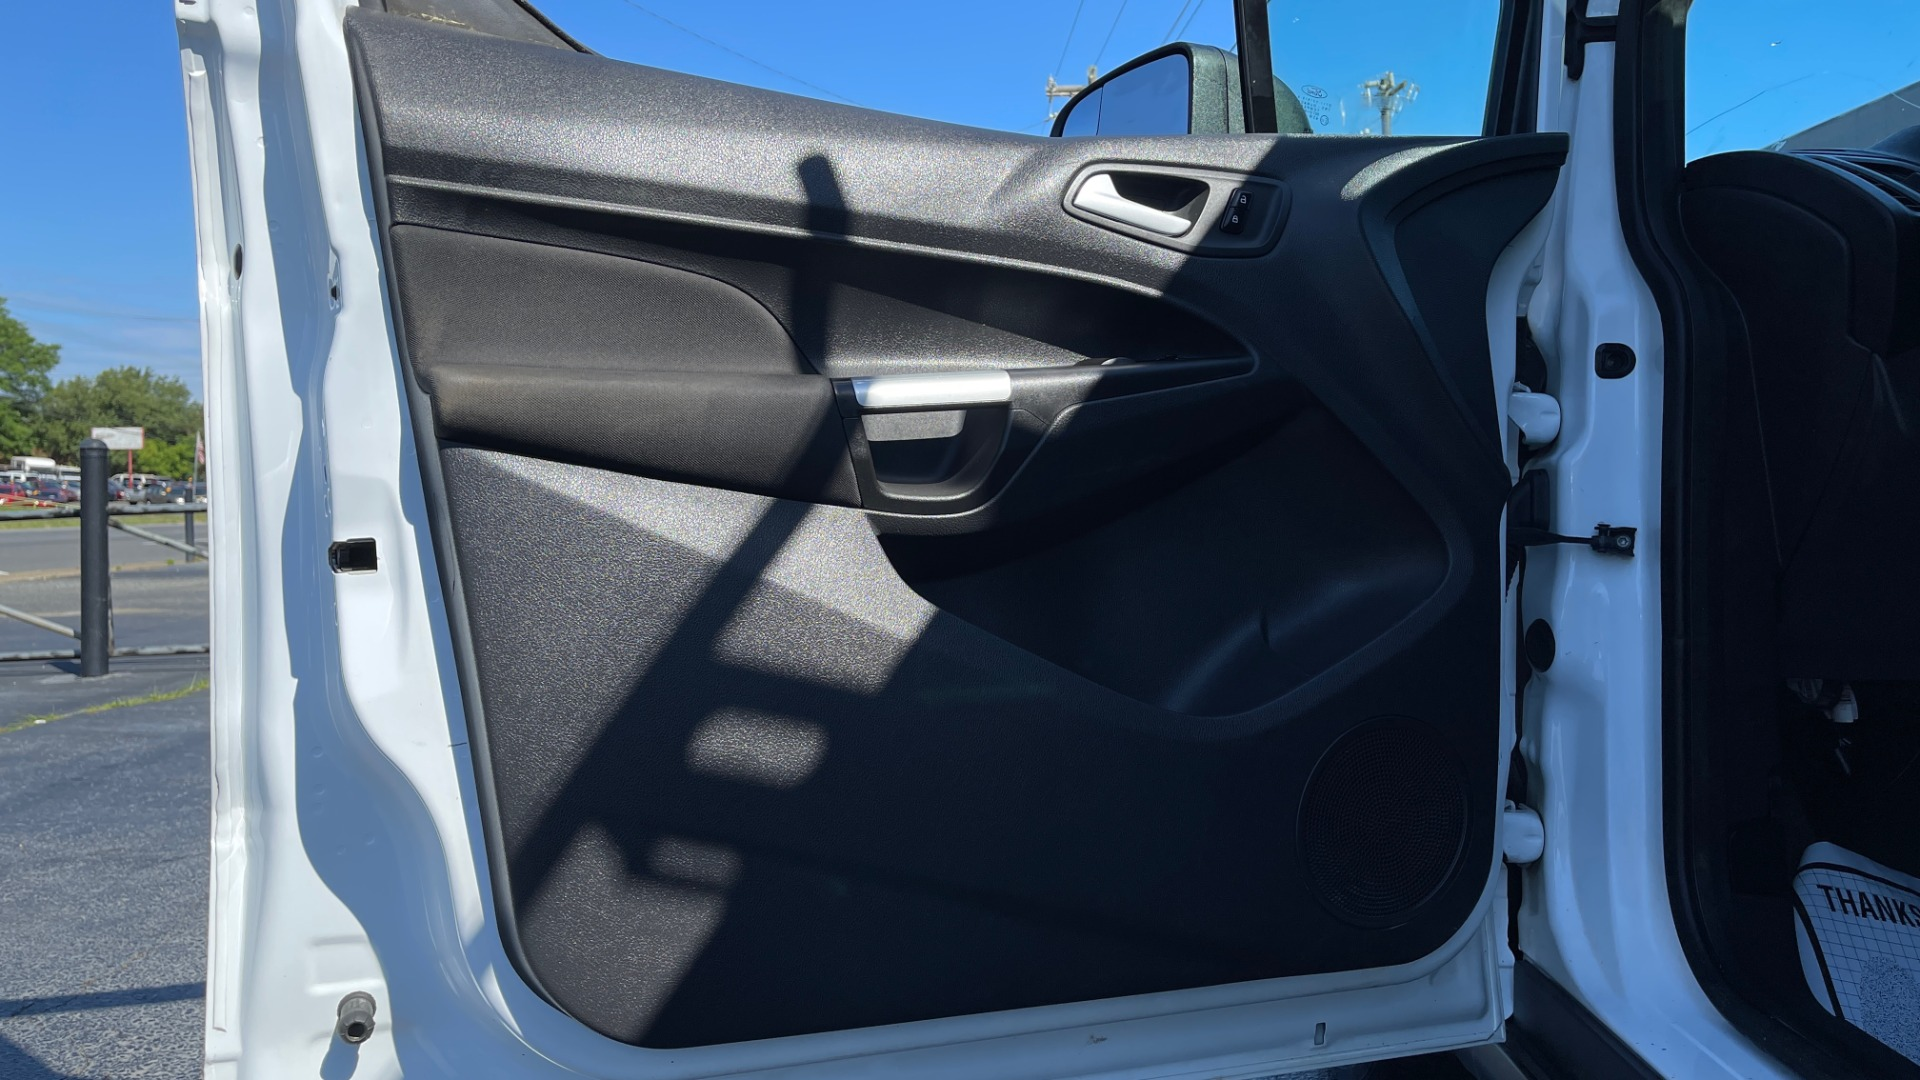 Used 2015 Ford TRANSIT CONNECT XLT CARGO VAN LWB / 2.5L 4-CYL / 6-SPD AUTO / ROOF RACK for sale $10,500 at Formula Imports in Charlotte NC 28227 20